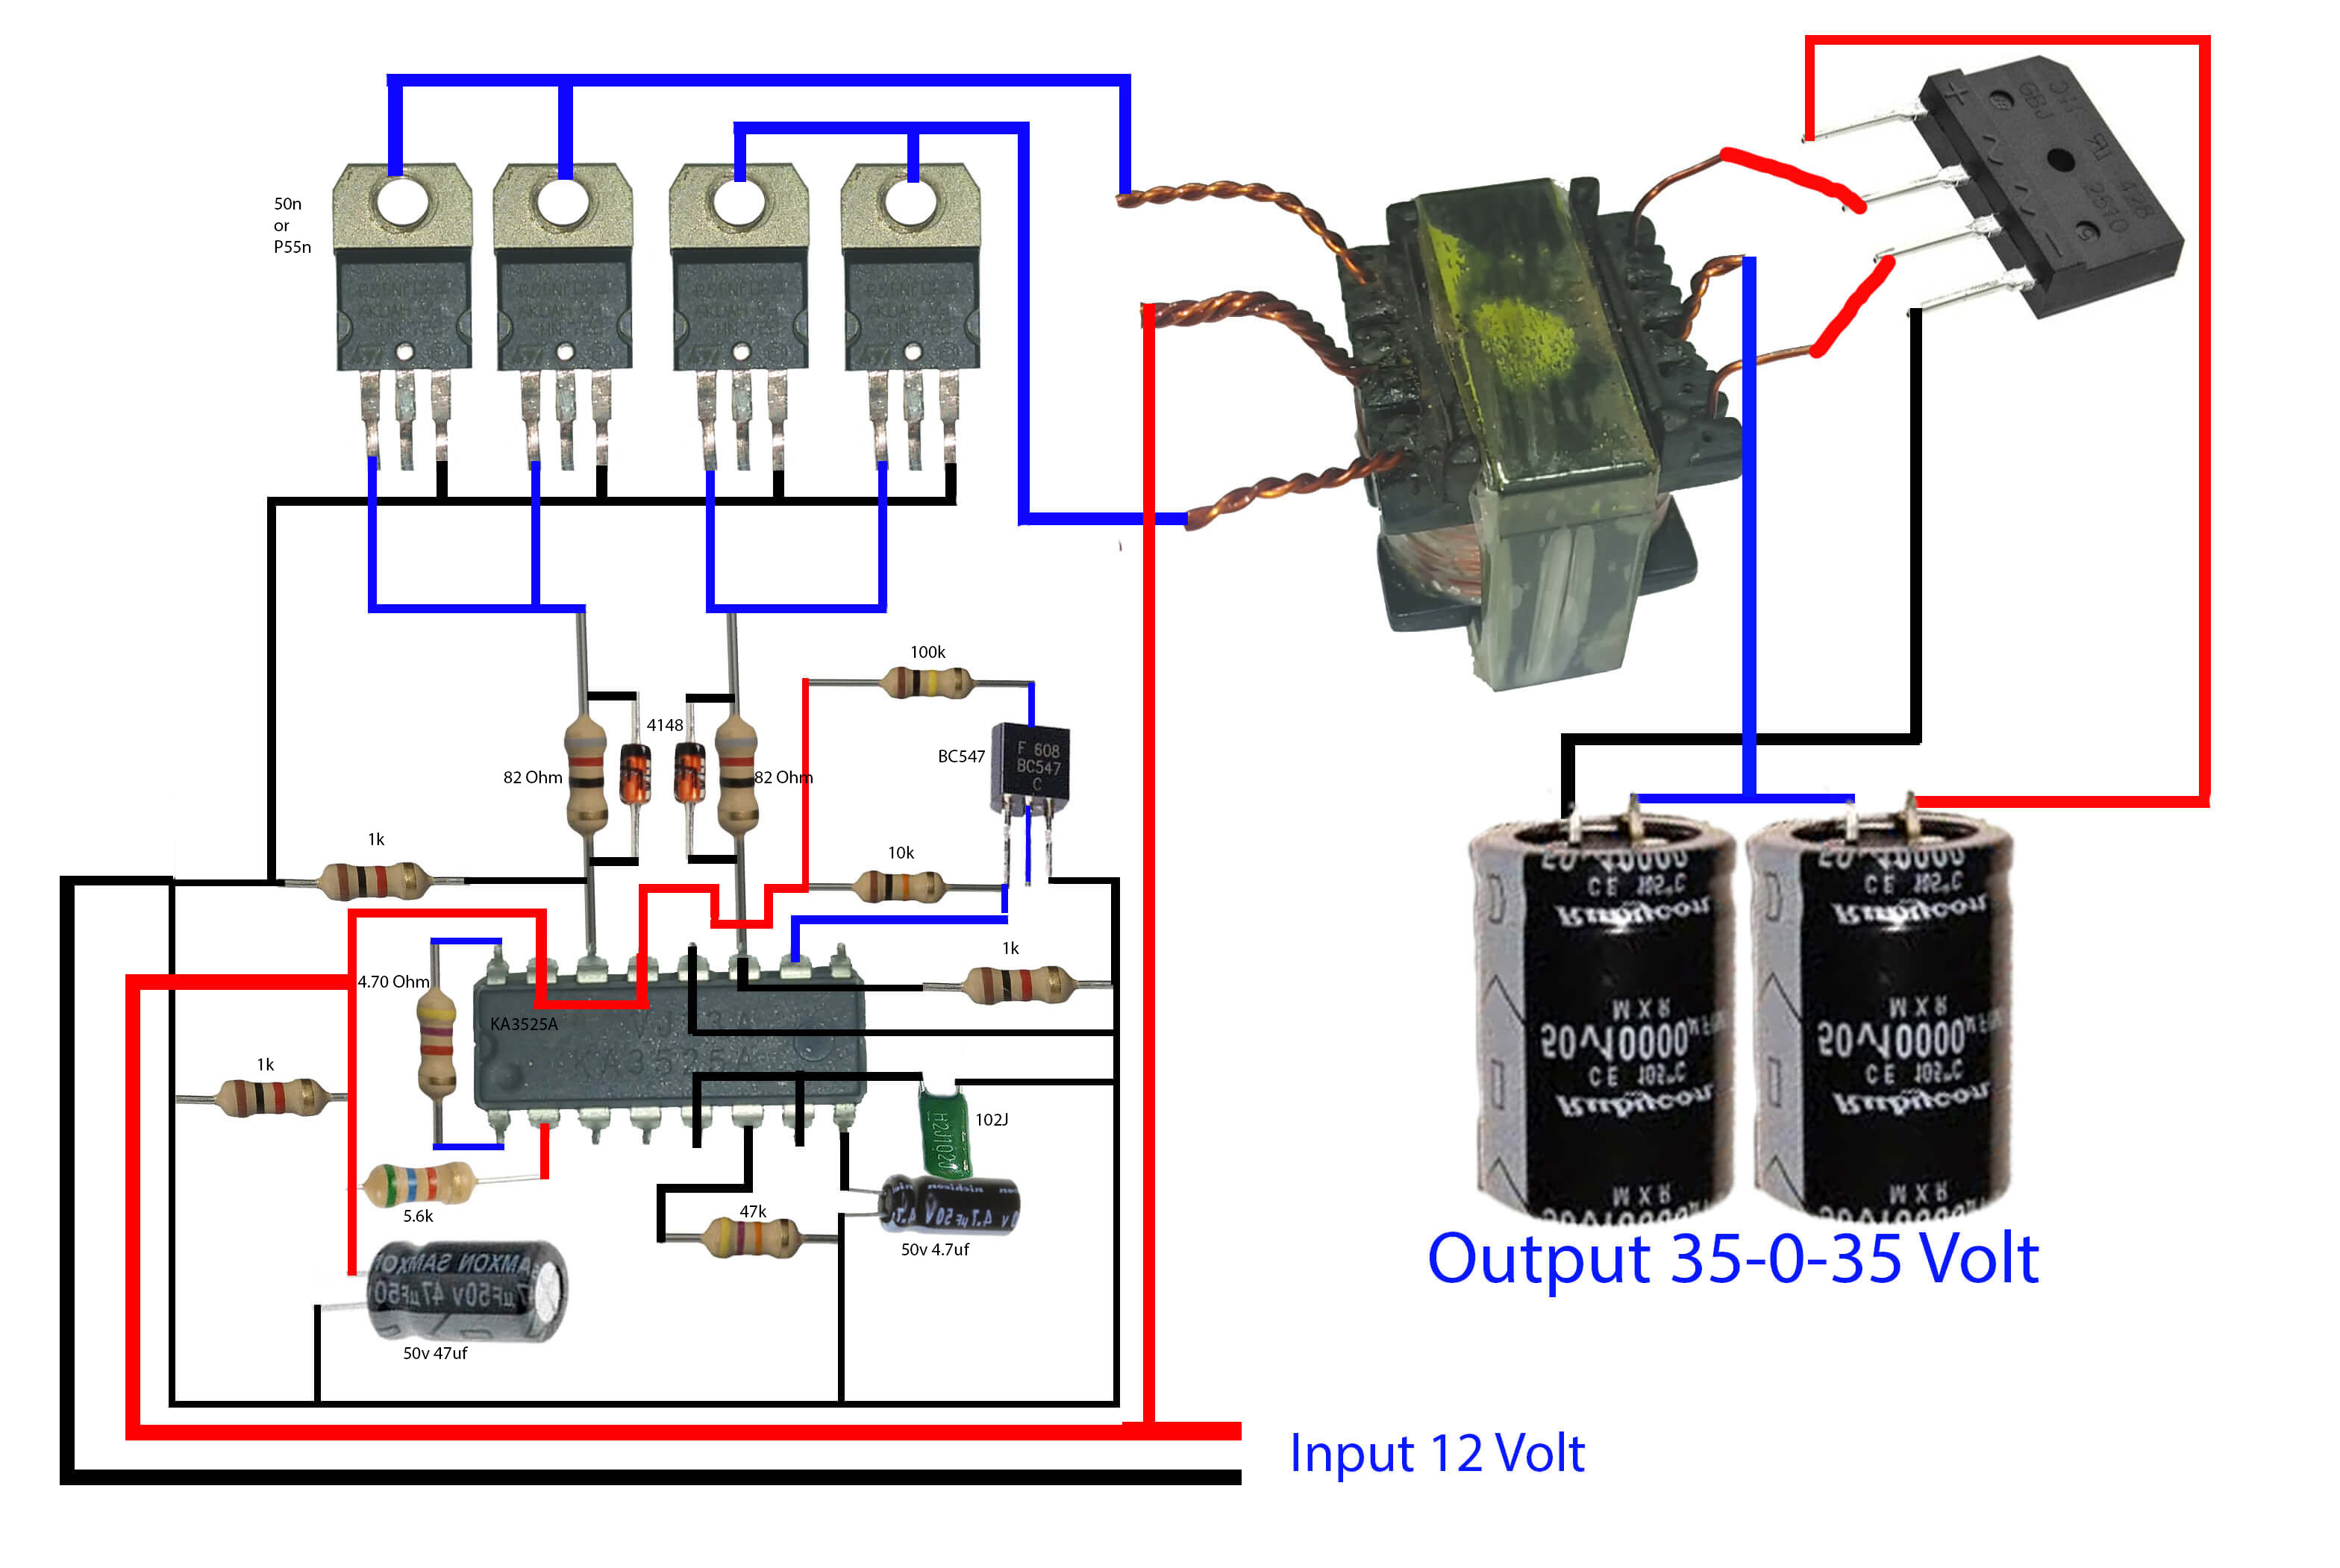 how to make inverter for amplifier - Electronics Help Care